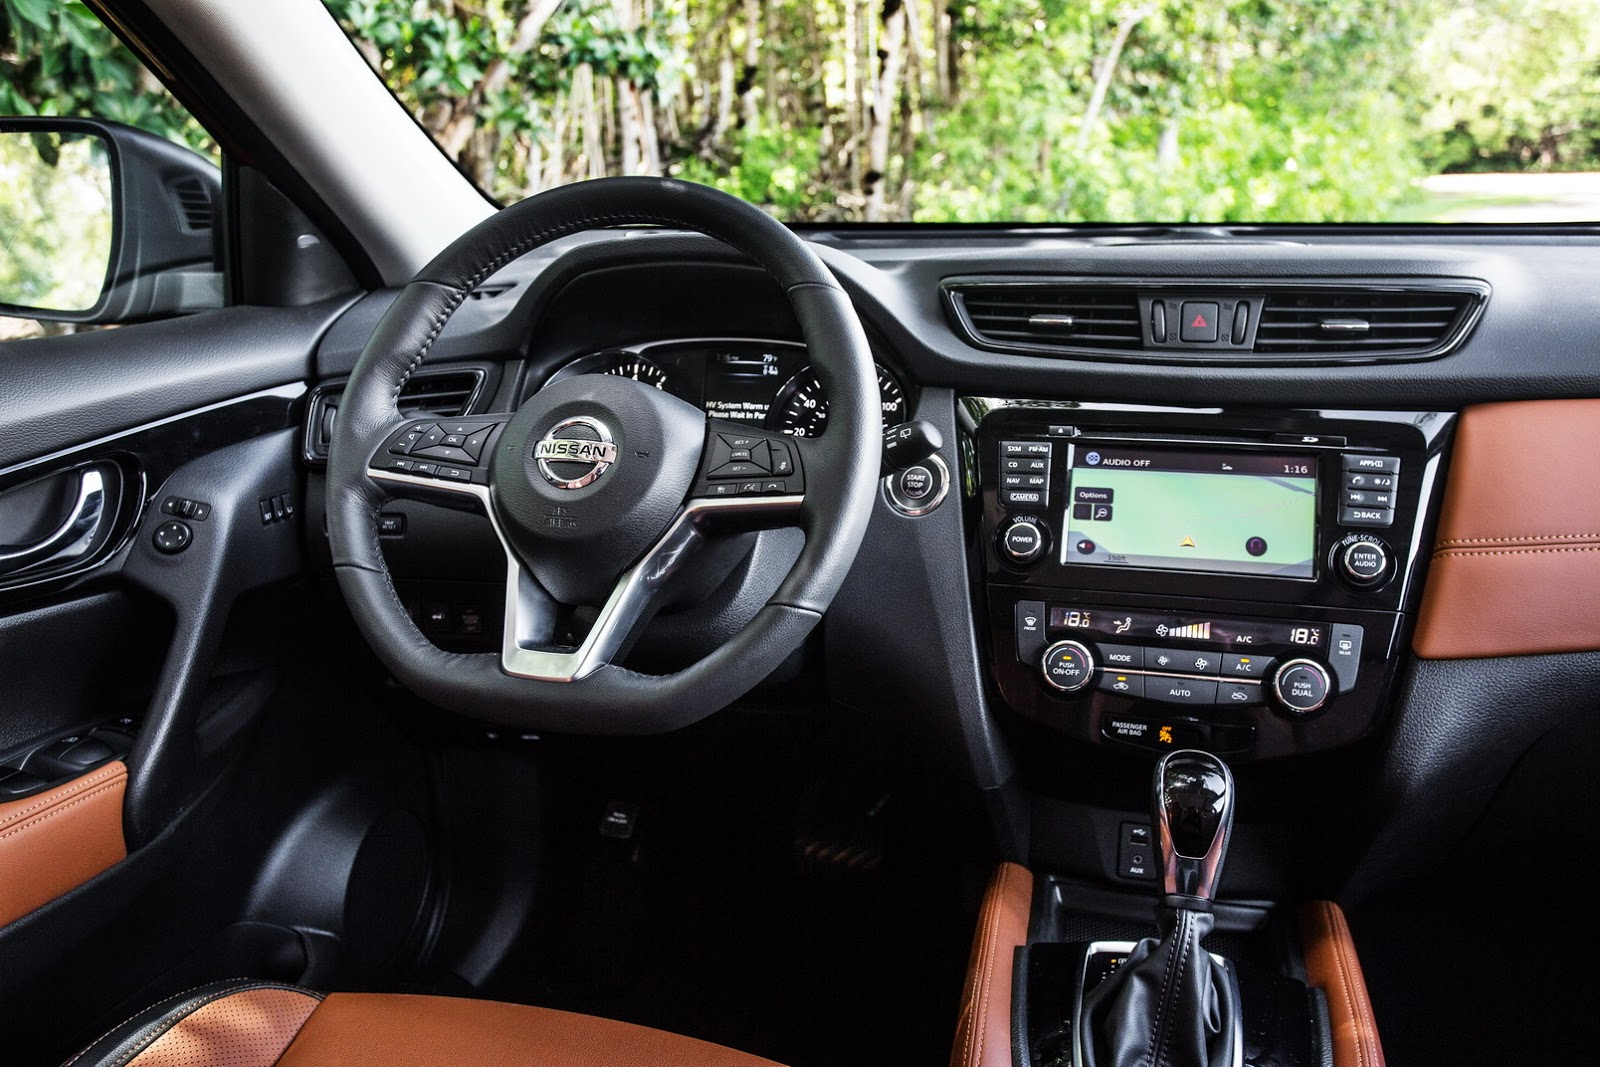 Vwvortex 2017 nissan rogue comes with a revised face hybrid vwvortex 2017 nissan rogue comes with a revised face hybrid variant vanachro Choice Image